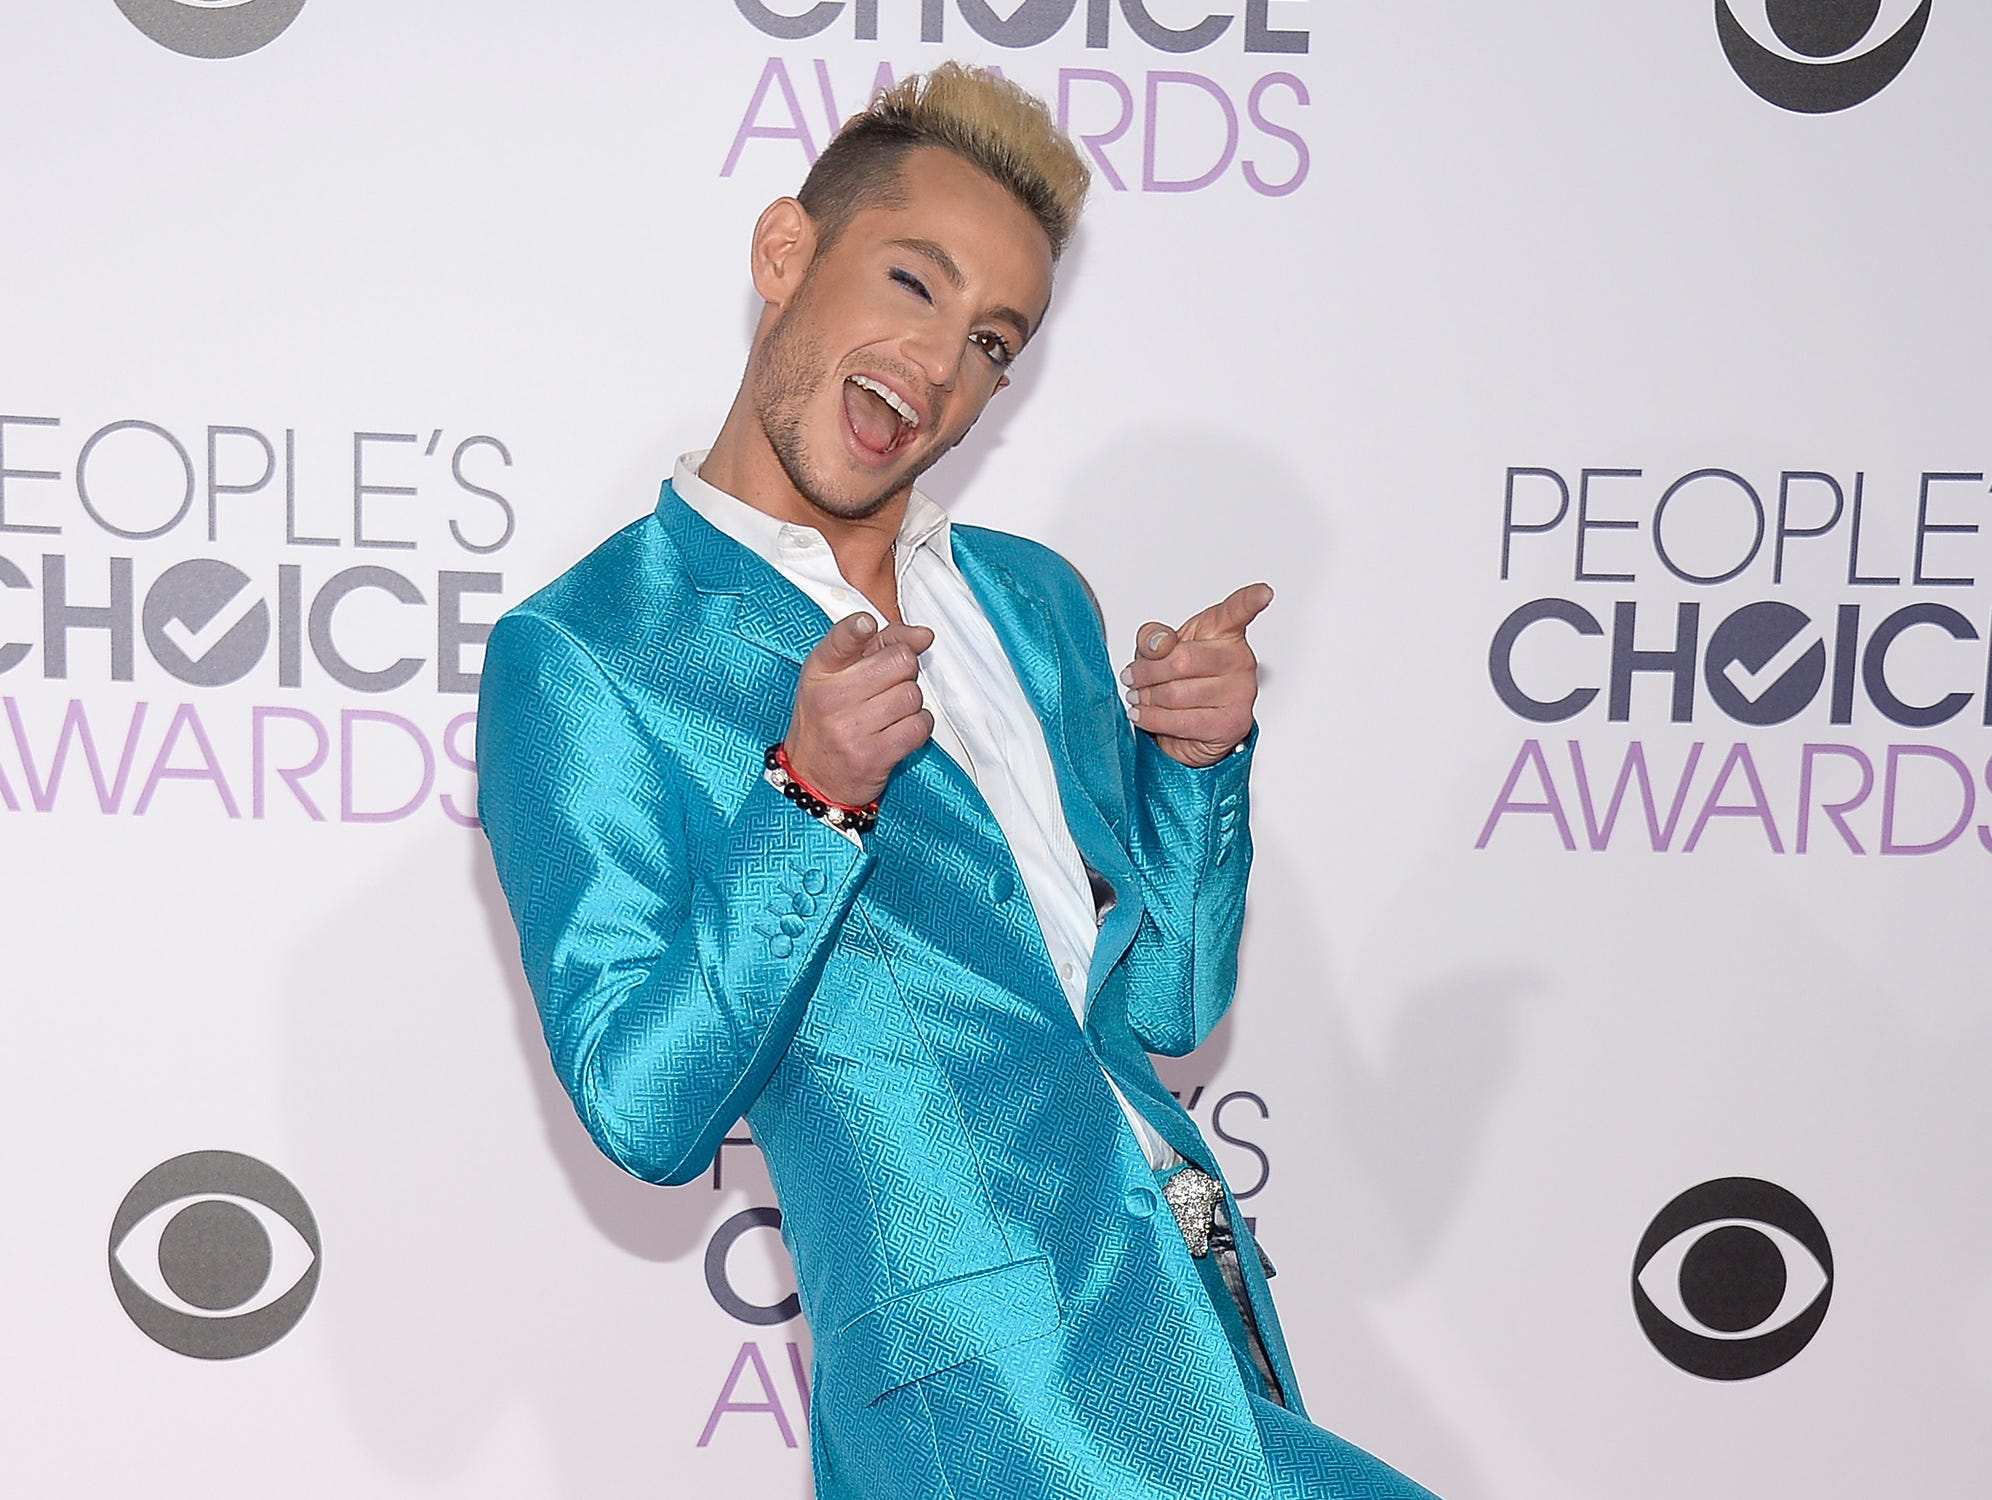 LOS ANGELES, CA - JANUARY 06:  Dancer Frankie Grande attends the People's Choice Awards 2016 at Microsoft Theater on January 6, 2016 in Los Angeles, California.  (Photo by Kevork Djansezian/Getty Images) ORG XMIT: 585845407 ORIG FILE ID: 503677186